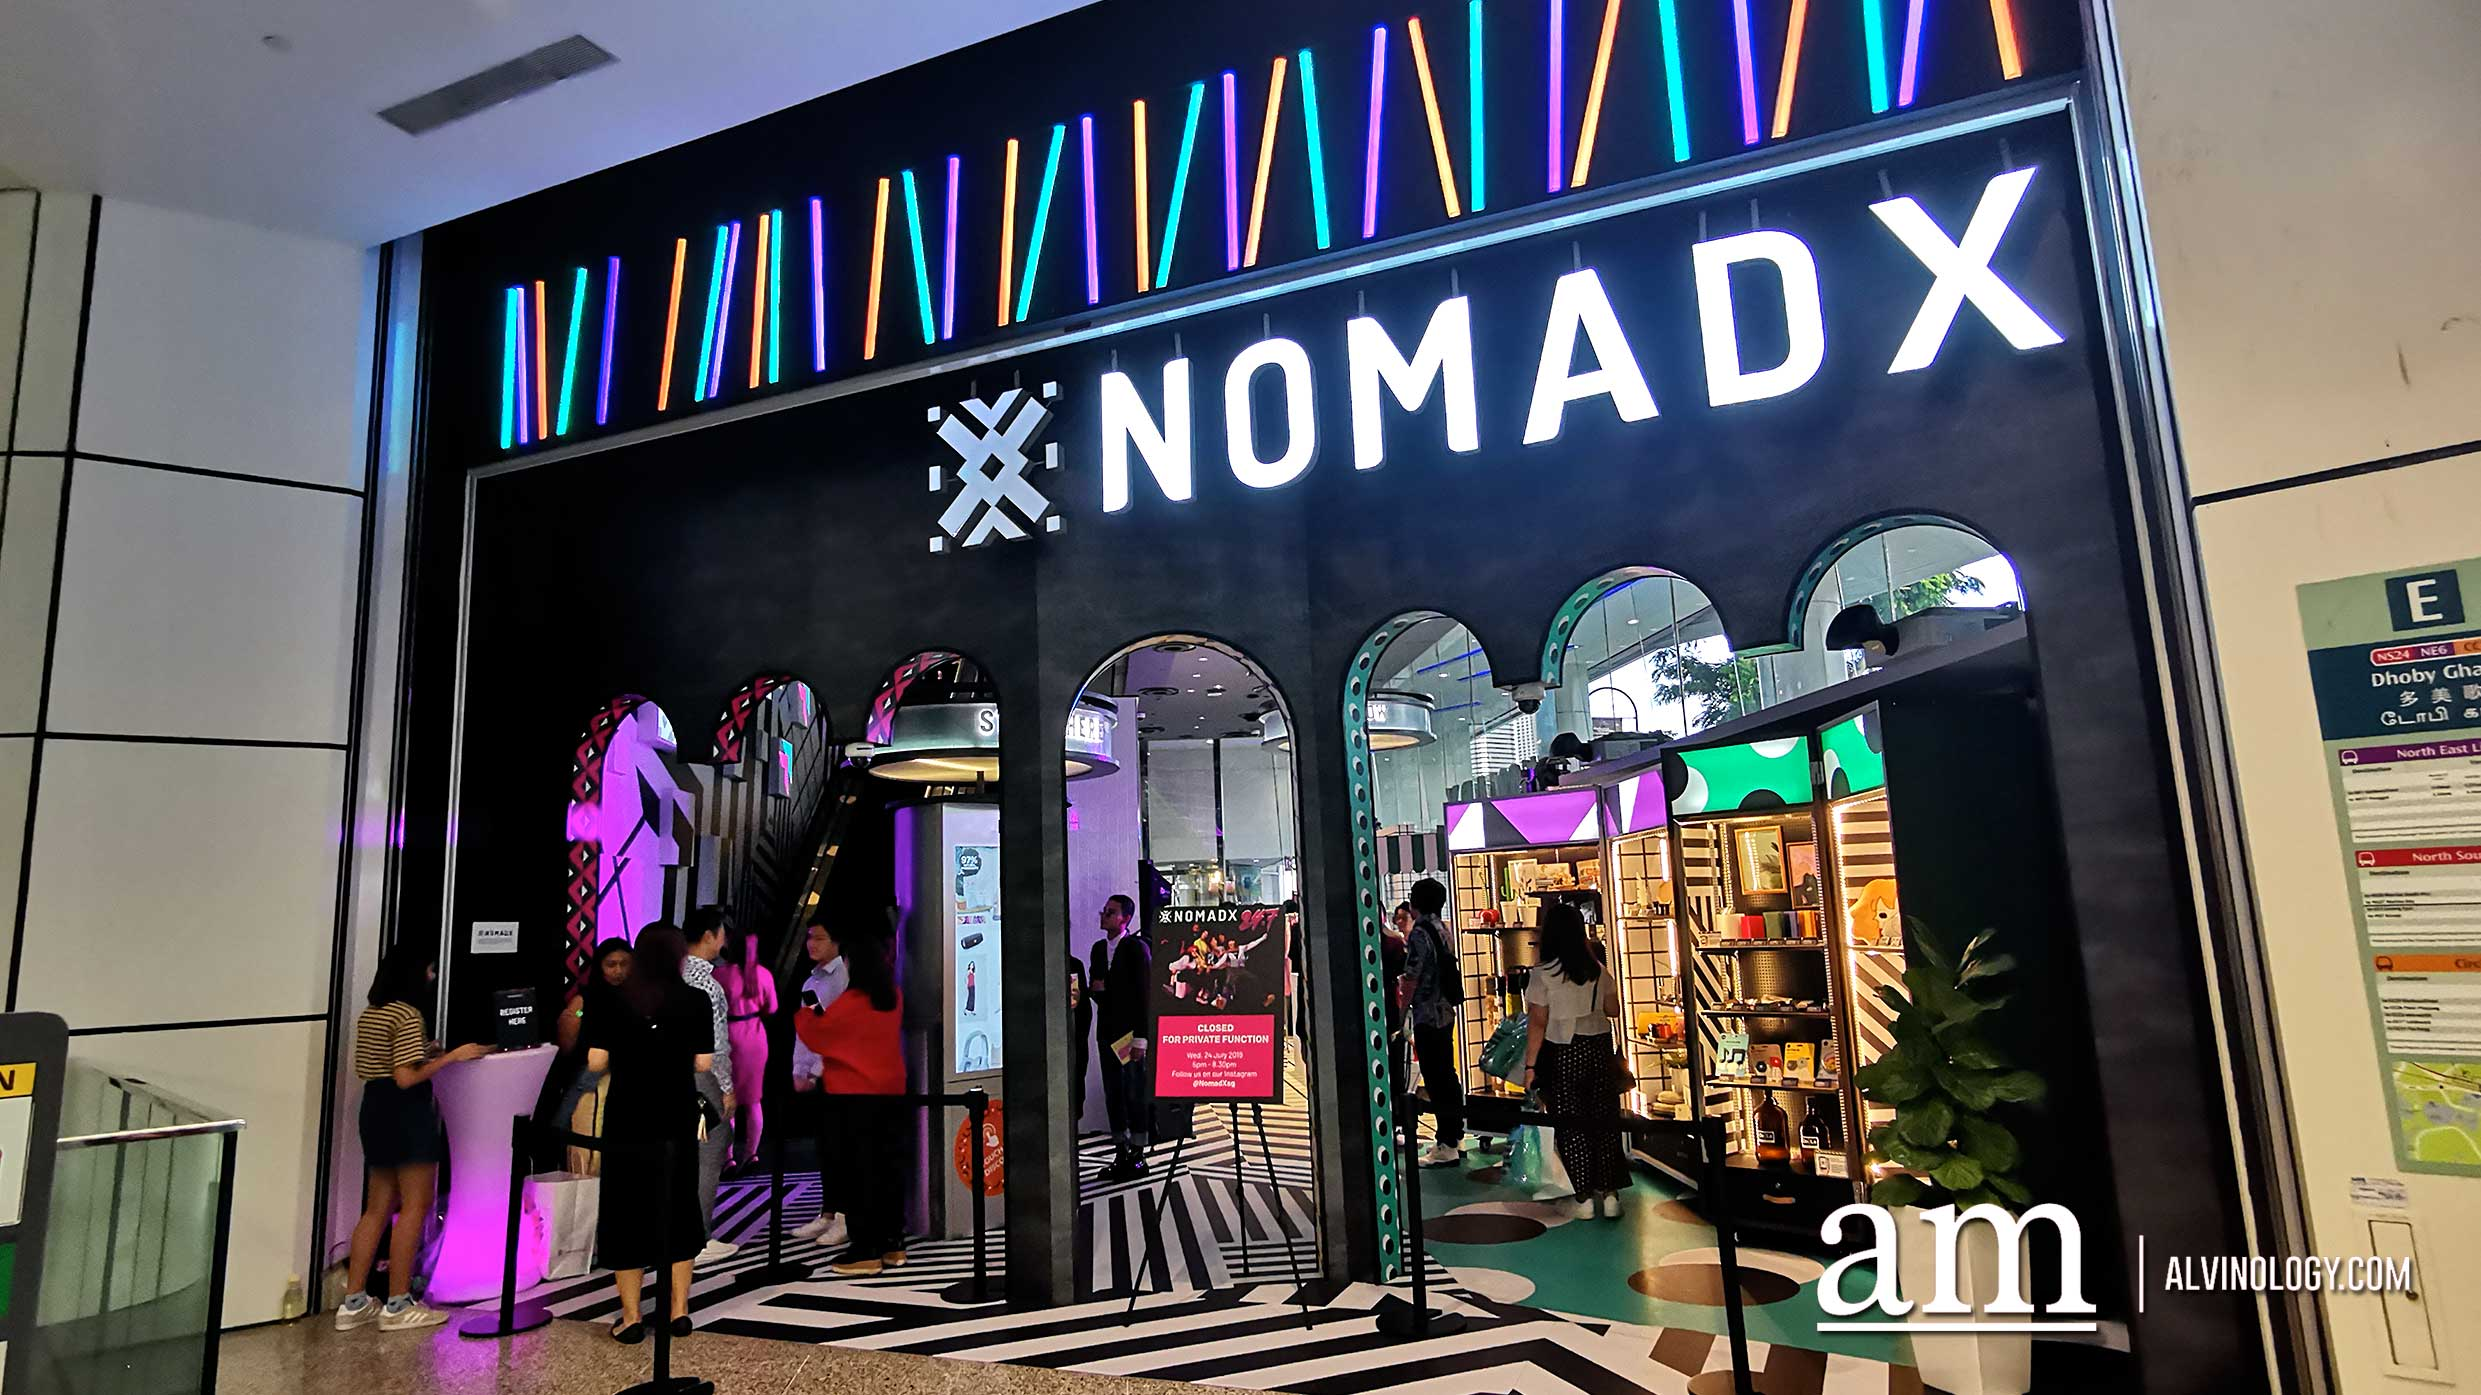 CapitaLand's Nomadx is back and its now open 24/7 via NomadX.sg - Alvinology